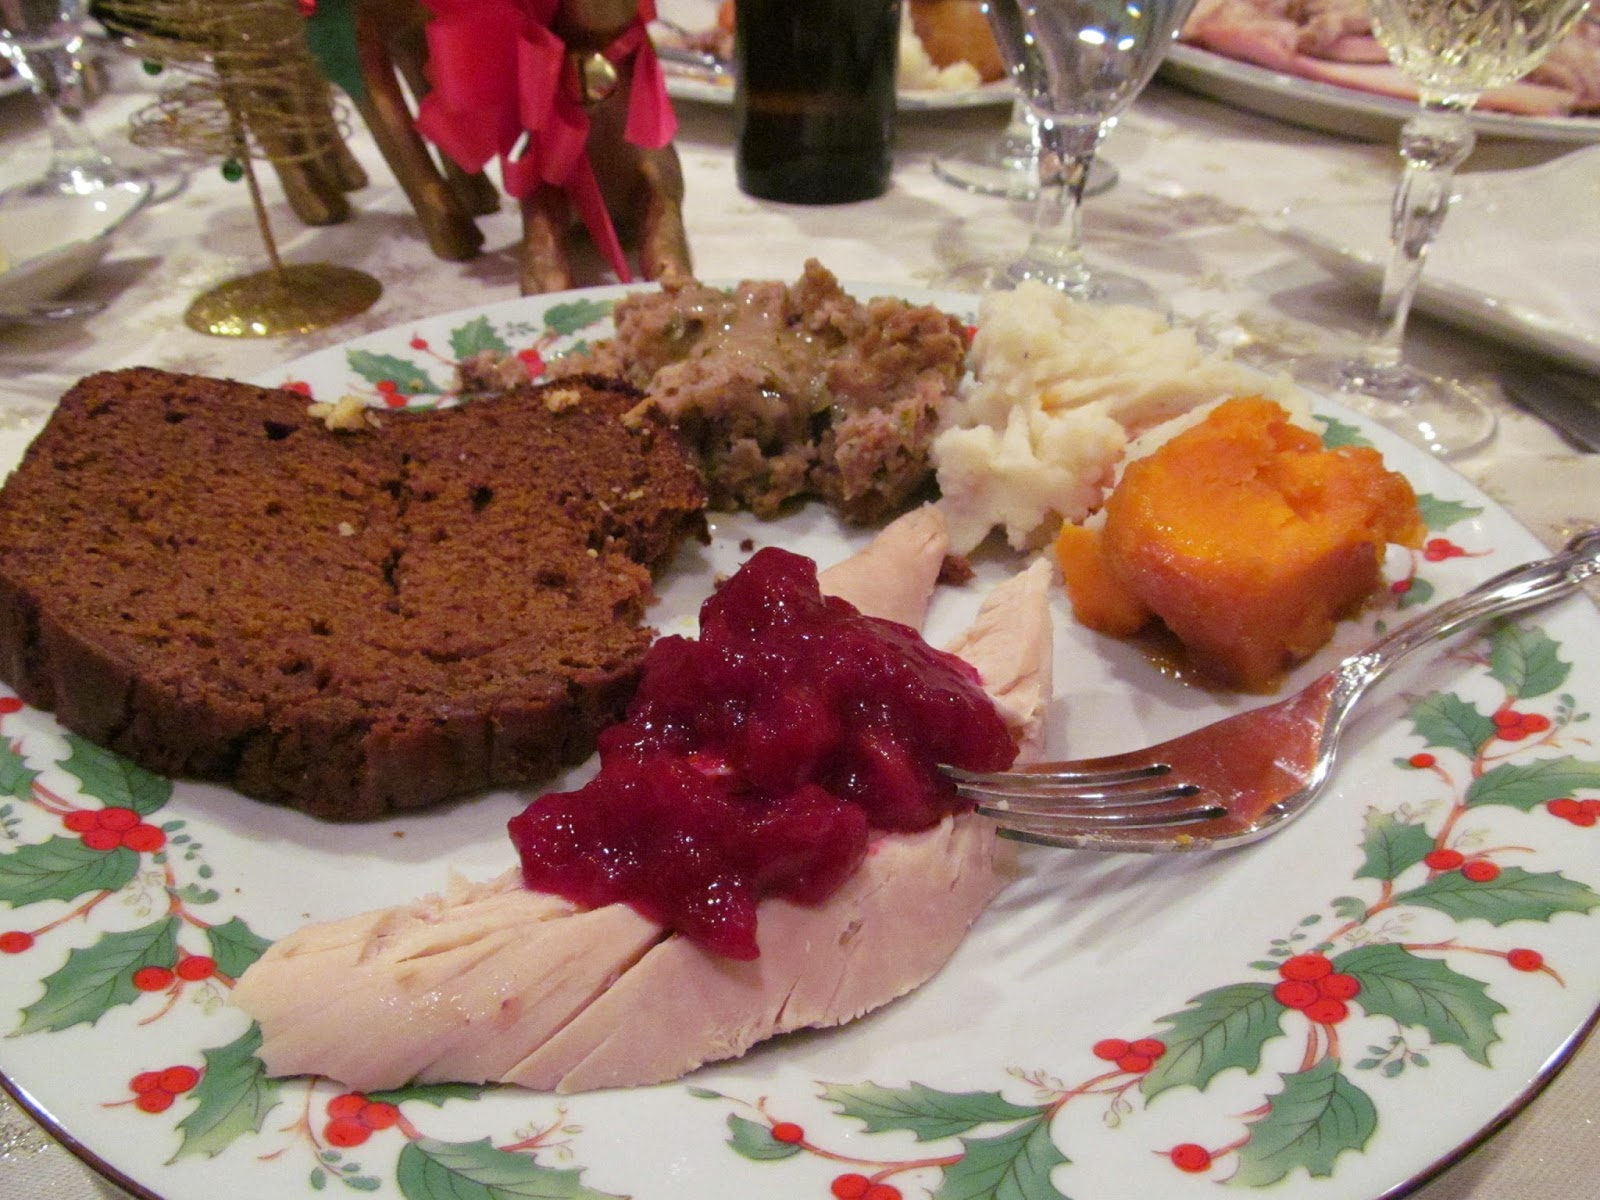 Delicious cranberry sauce served on turkey (c) Stormy Heart